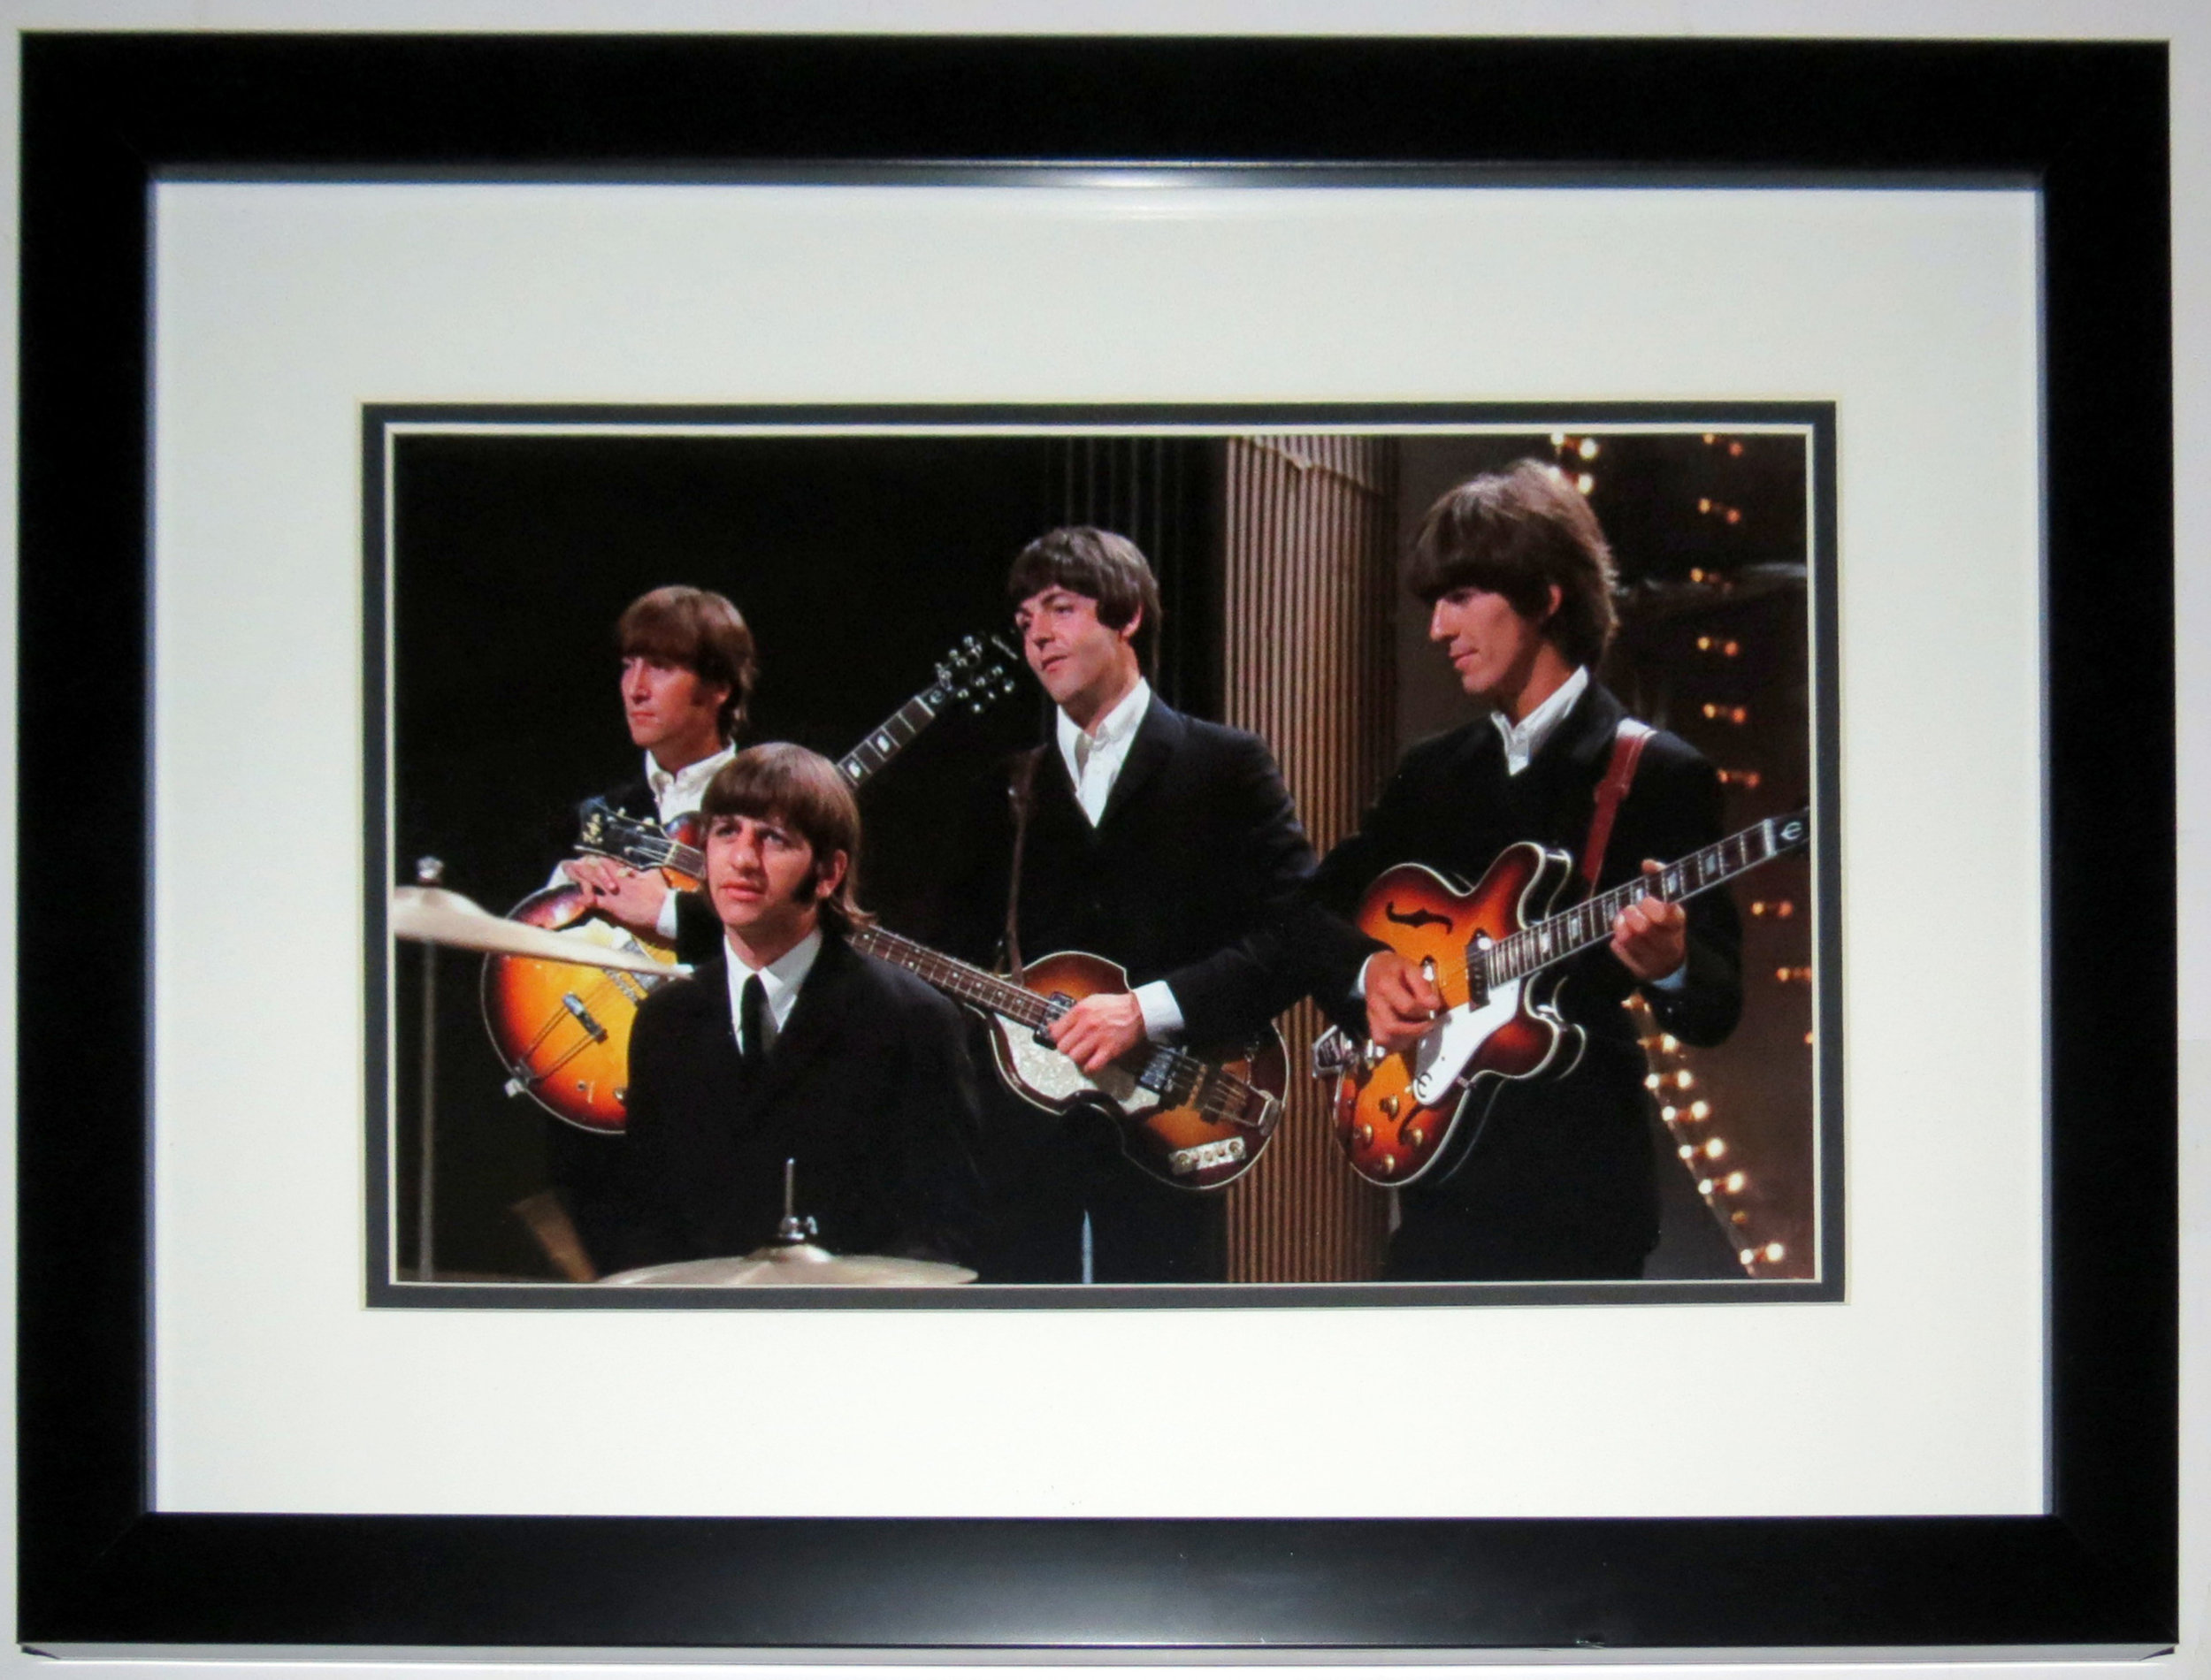 The Beatles Band 8x12 Photo - Professionally Framed